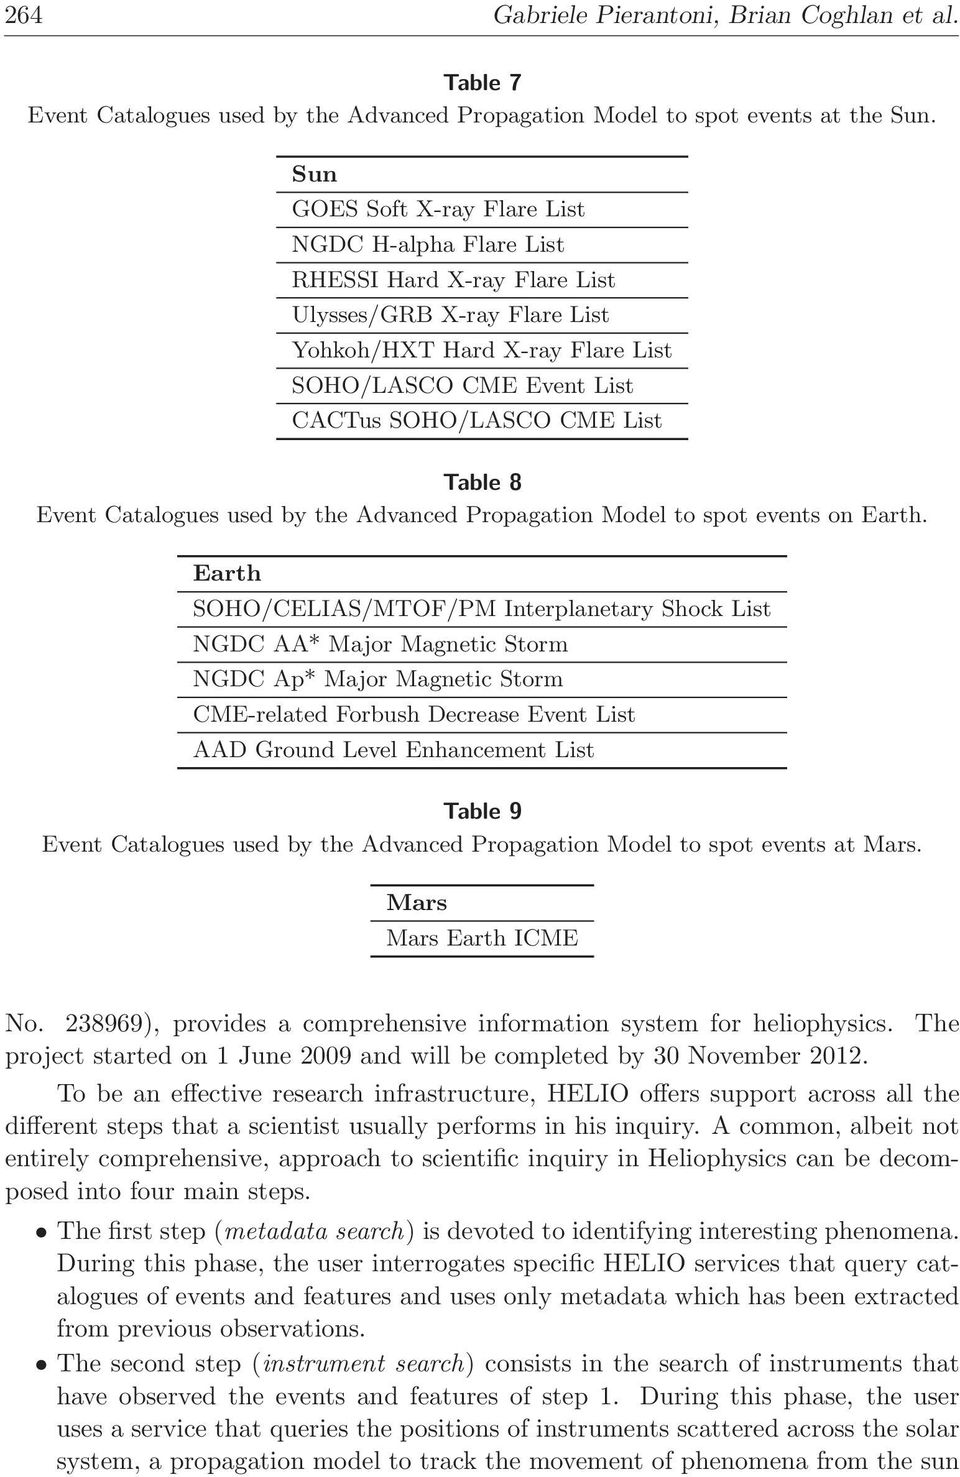 Table 8 Event Catalogues used by the Advanced Propagation Model to spot events on Earth.